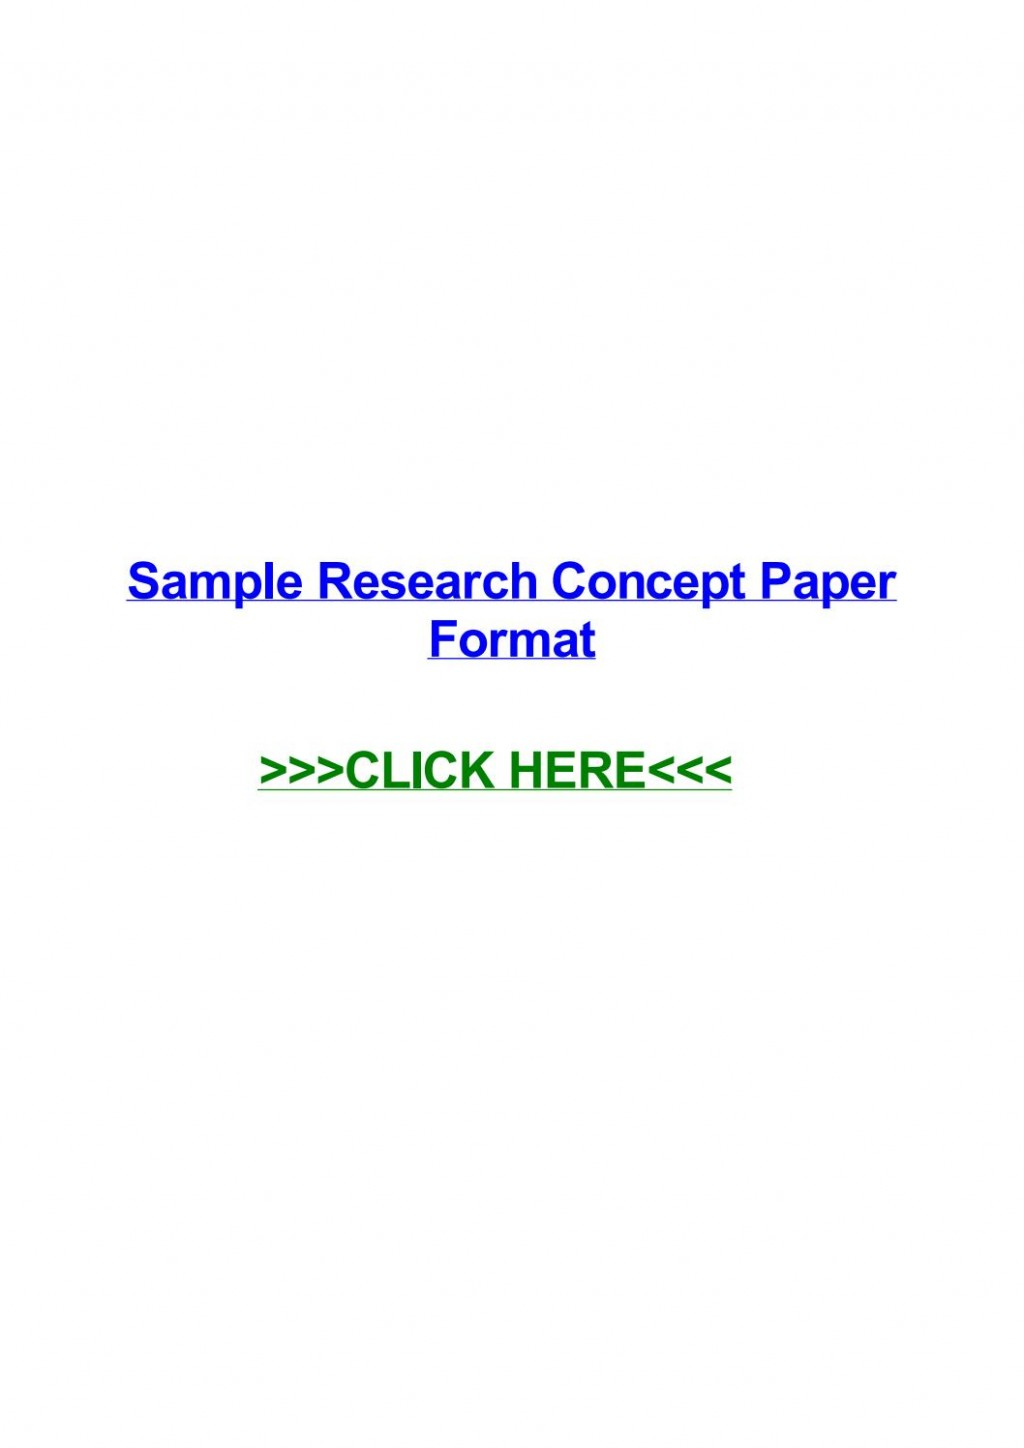 003 Page 1 Sample Research Concept Wondrous A Paper Of Pdf Phd Large